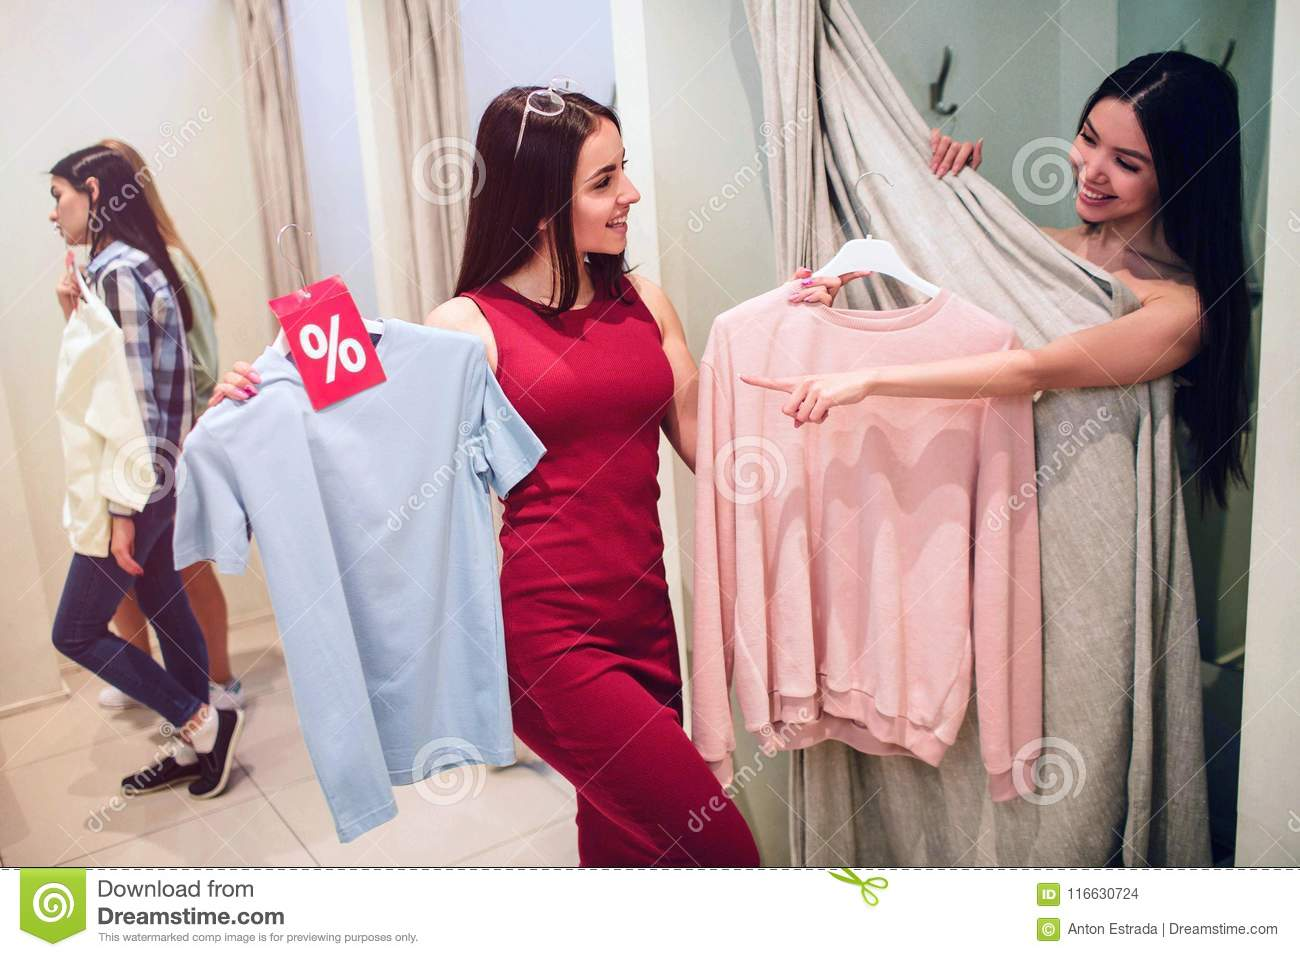 Good picture of asian girl trying on herself different clothes. Girl in dress gives her pink shirt but asian girl wants